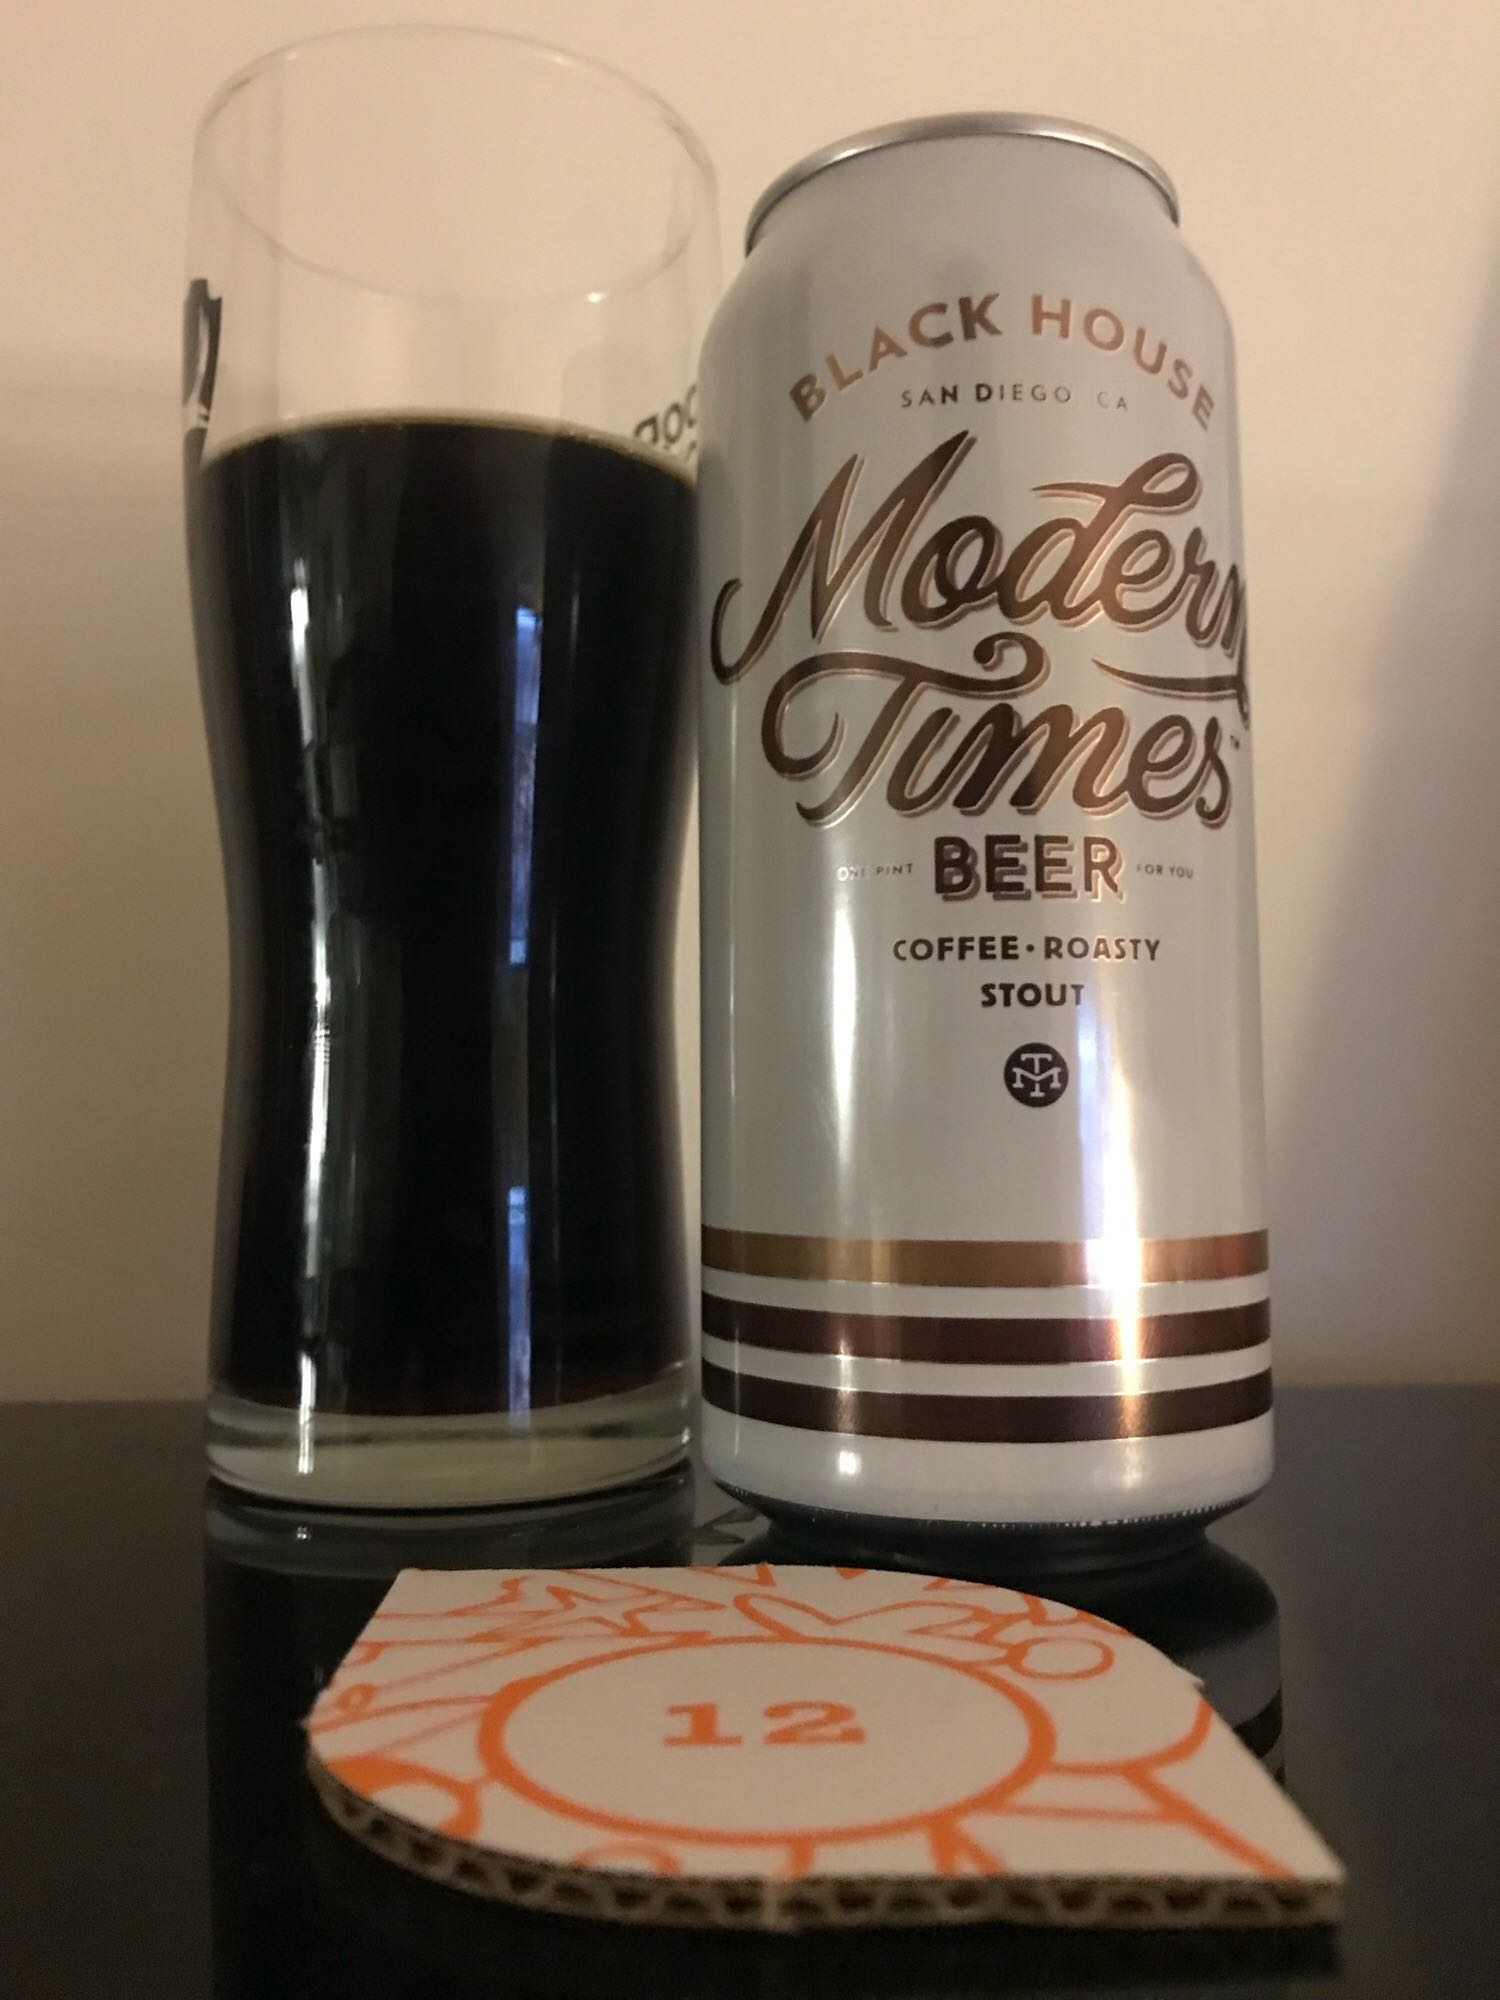 Day Twelve: Black House - Oatmeal Stout 5.8% // Modern Times Beer - Just like buses, two stouts turn up at once. This is a way better stout than yesterday's (even though I enjoyed that). It's way more nuanced in flavour but has much more depth to it. The coffee is still prominent but it has a hint of chocolate throughout which makes it very enjoyable. San Diego's Modern Times are one of the only breweries in the world to roast their own coffee which I thought was pretty cool. As I'm not a big coffee drinker, I'm pleased they decided to chuck some of it into a beer. I've had several Modern Times beers but definitely need to try more. I imagine this is wonderful on tap. We're at the halfway point now and I'm pretty happy with the range of beers and styles so far. Amazingly, still yet to have a beer in here that I've had before (the Orval doesn't count as it's the 2017 version)!